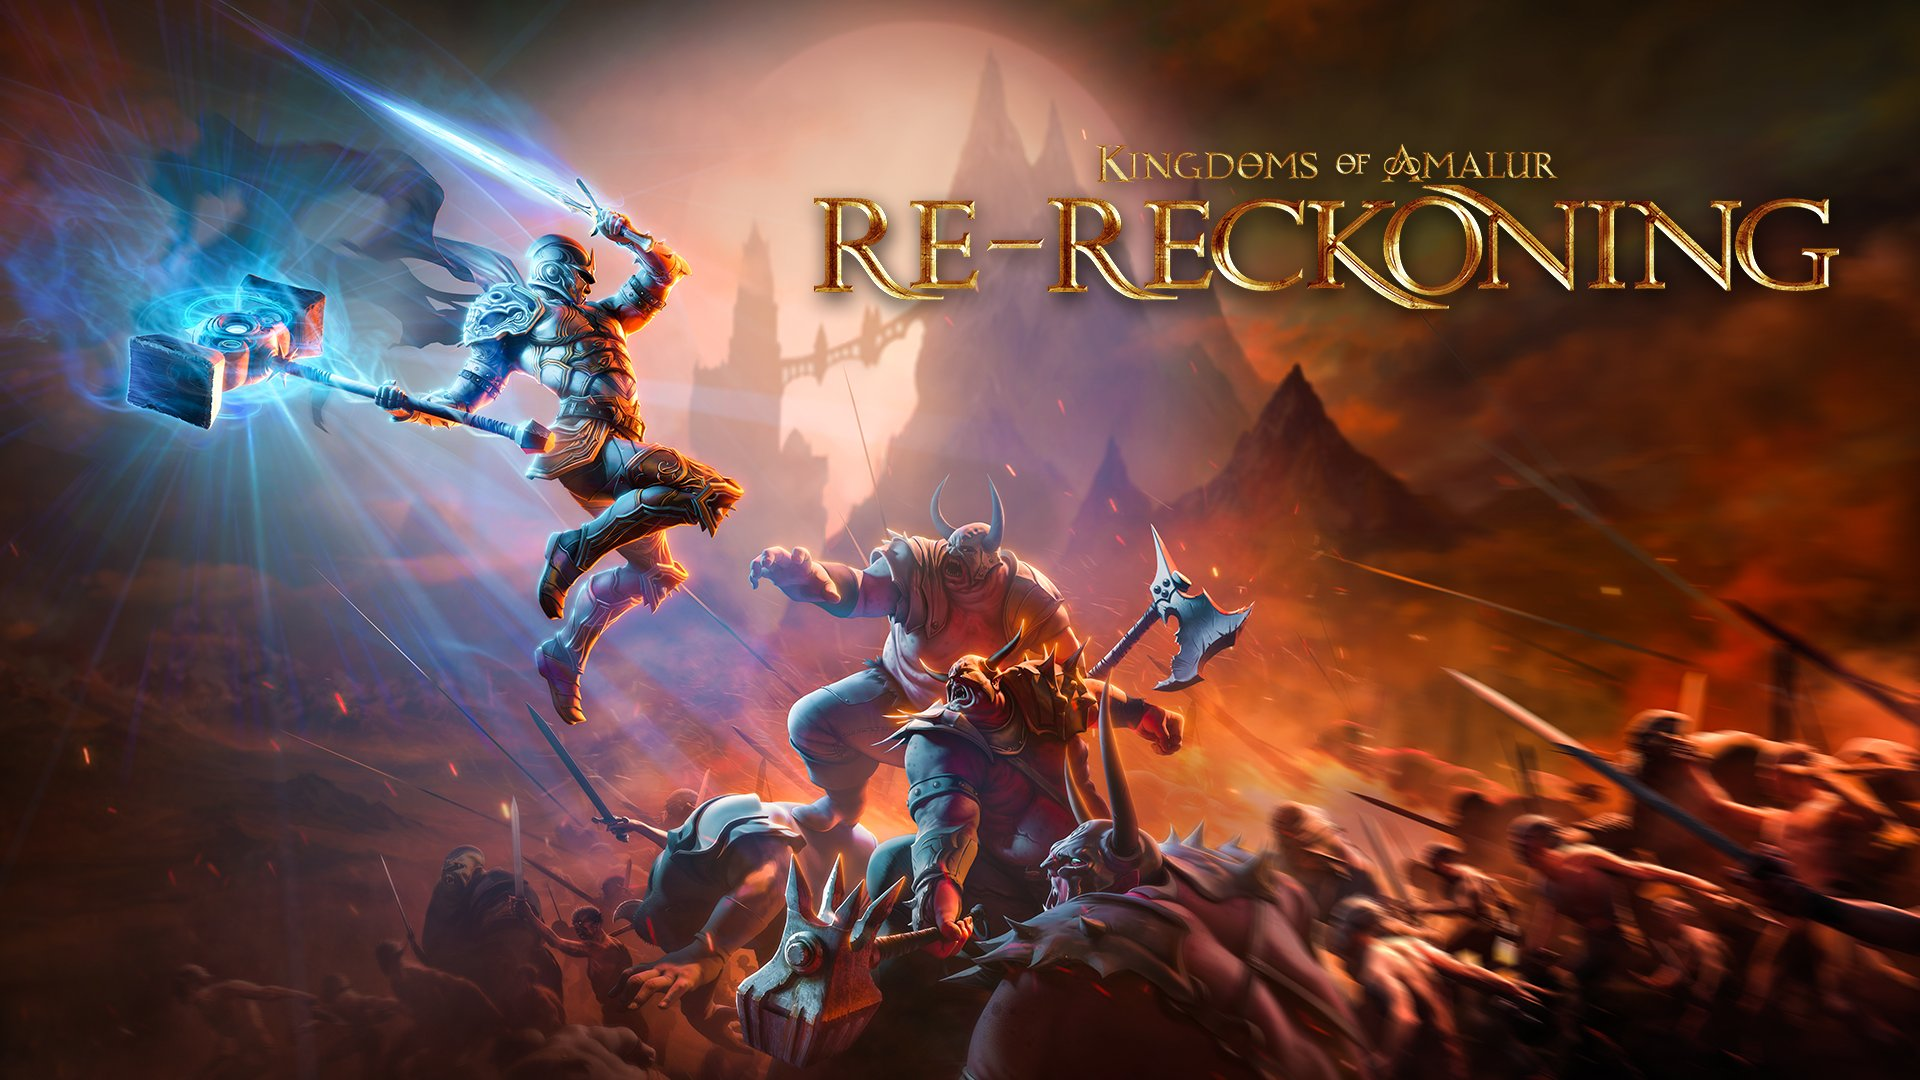 Kingdoms of Amalur: Re-Reckoning coming to Nintendo Switch on 16th March